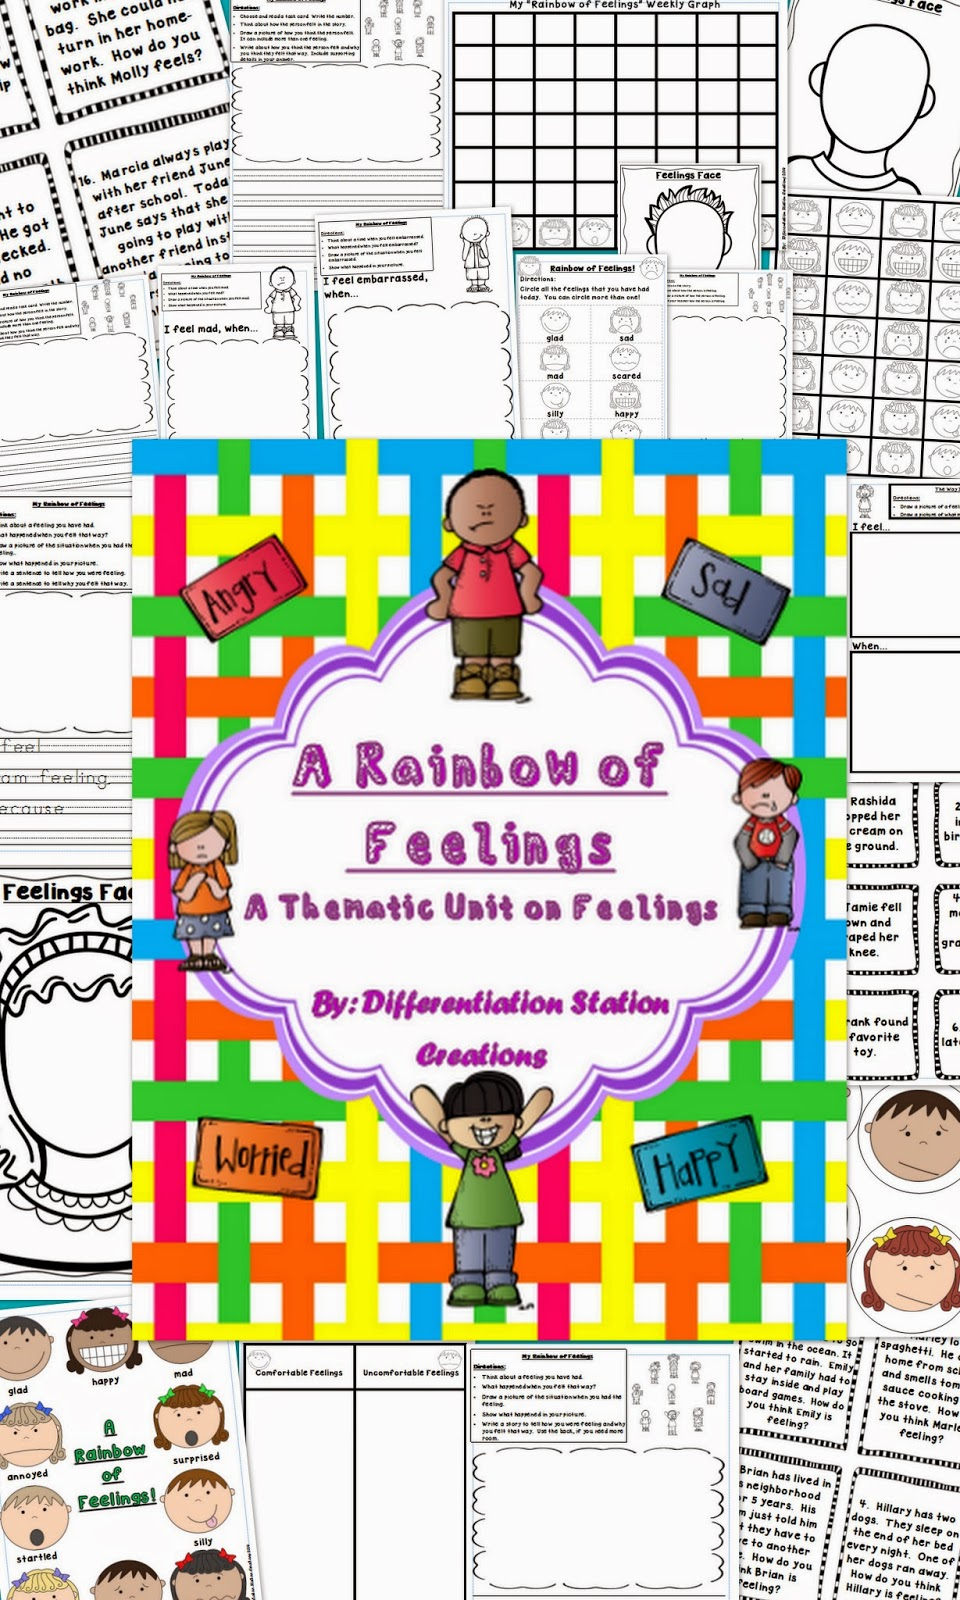 http://www.teacherspayteachers.com/Product/Thematic-Unit-on-Feelings-A-Rainbow-of-Feelings-1380283